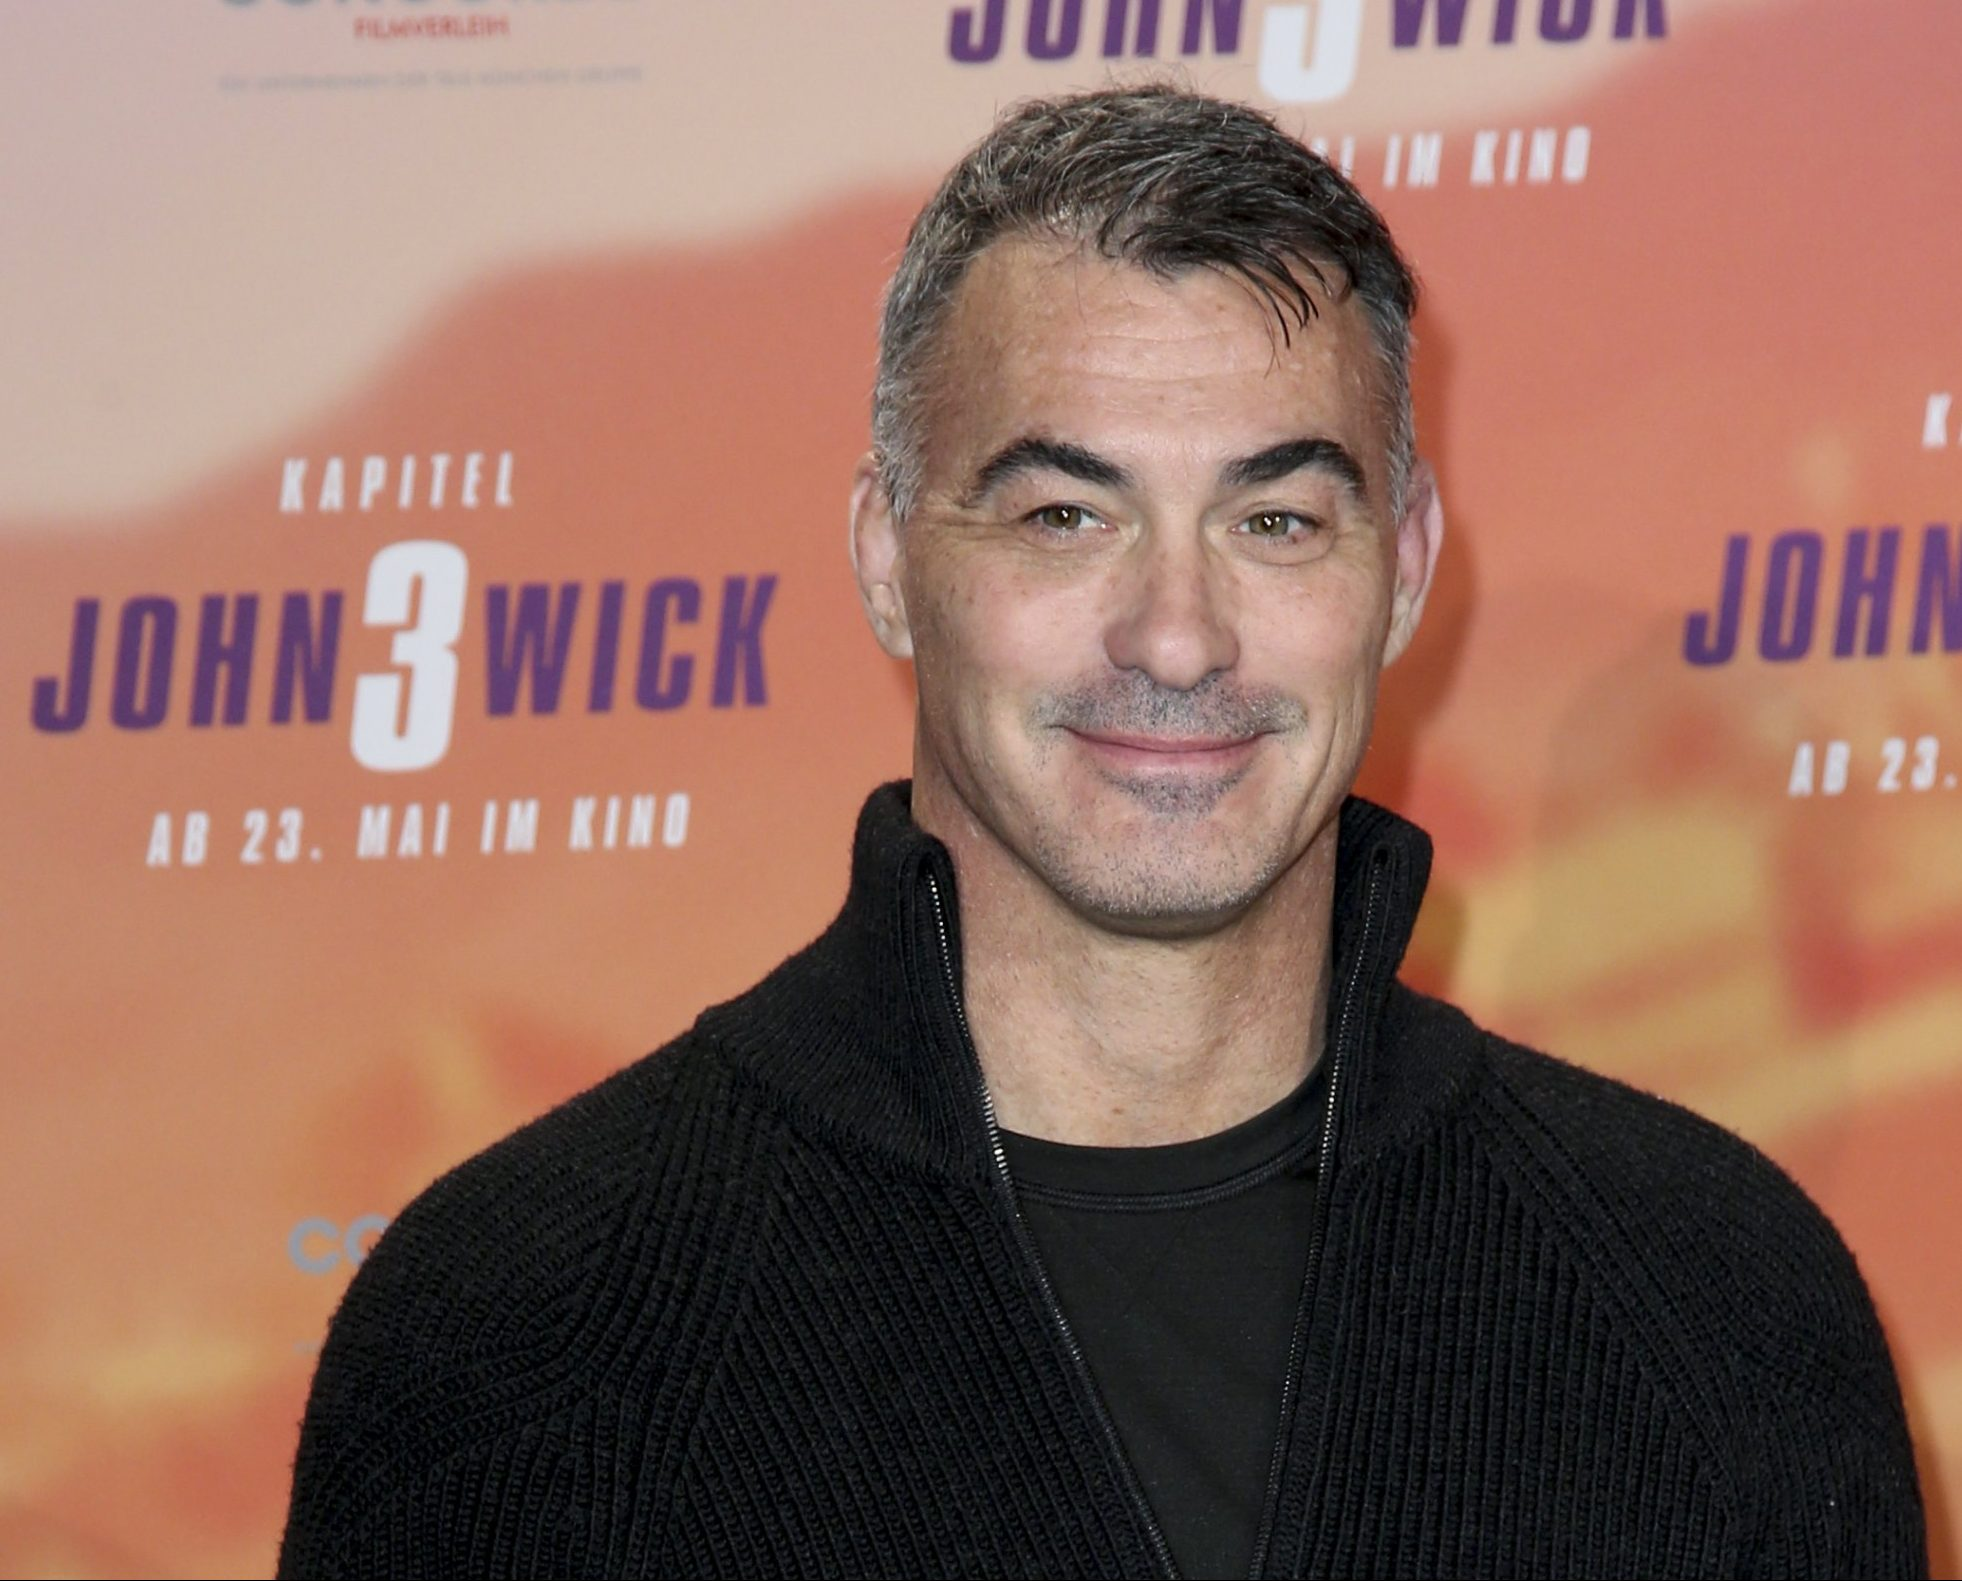 who chad stahelski john wick 3 director was keanu reeves stuntman before movie e1613483598900 30 Haunting Facts About Brandon Lee's The Crow